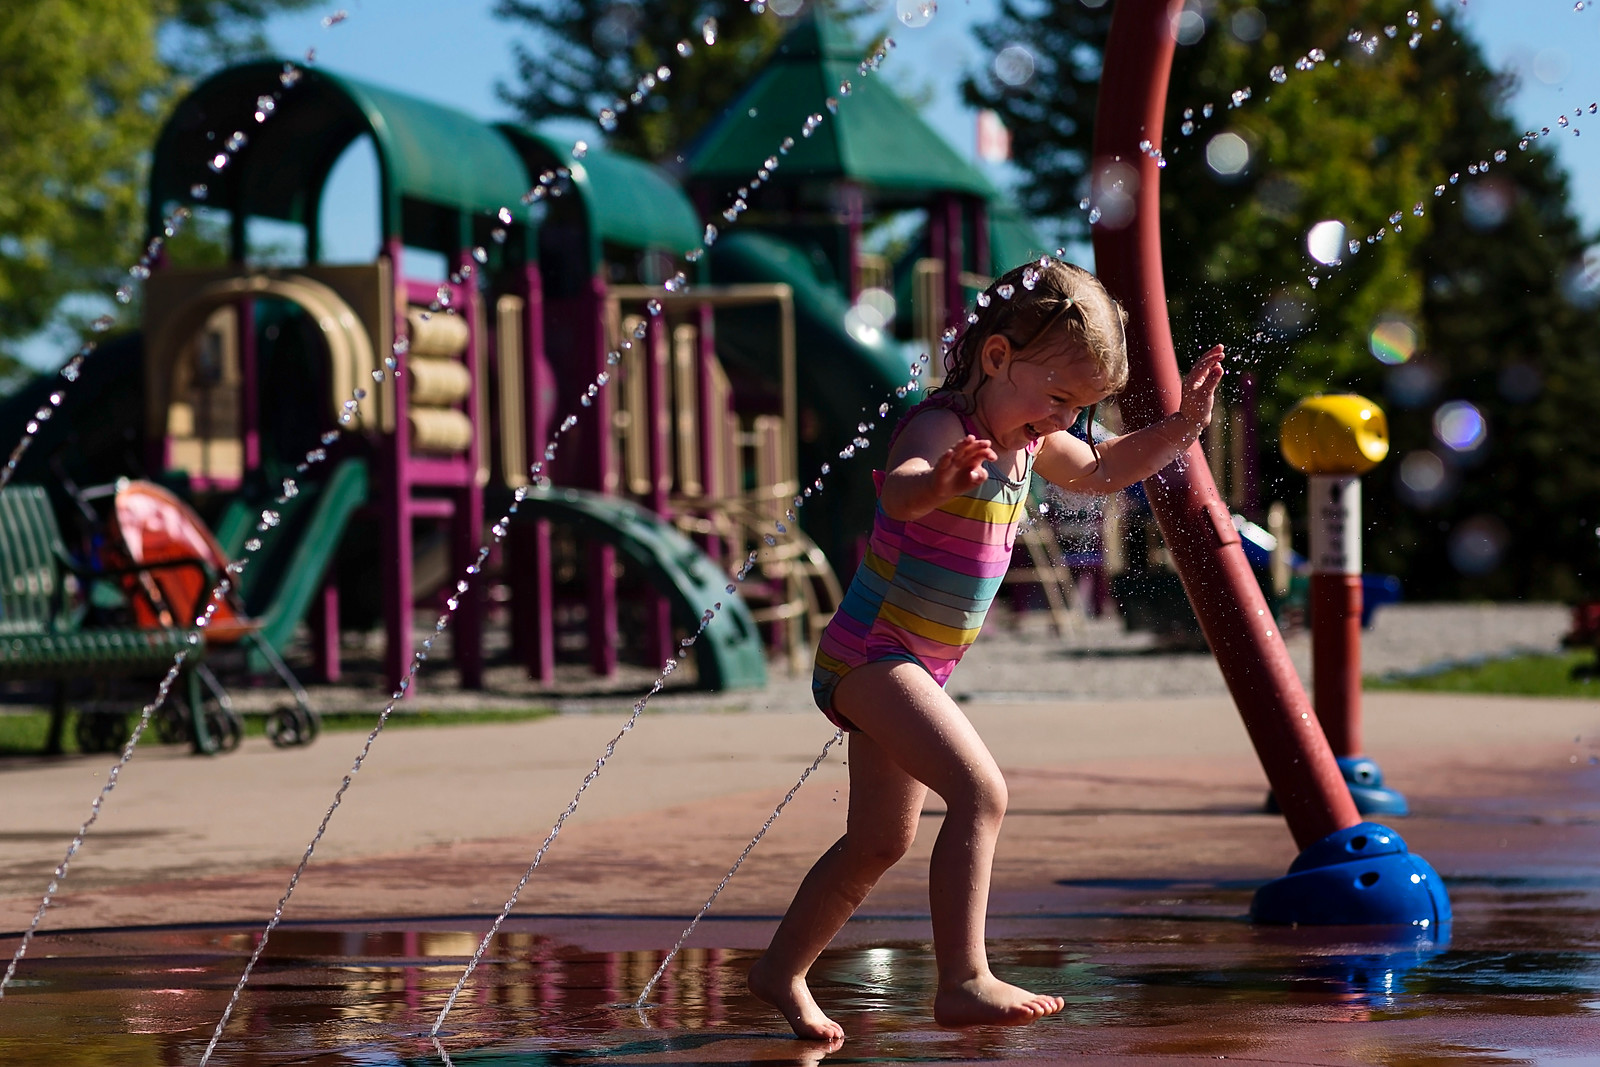 Child playing in splash pad